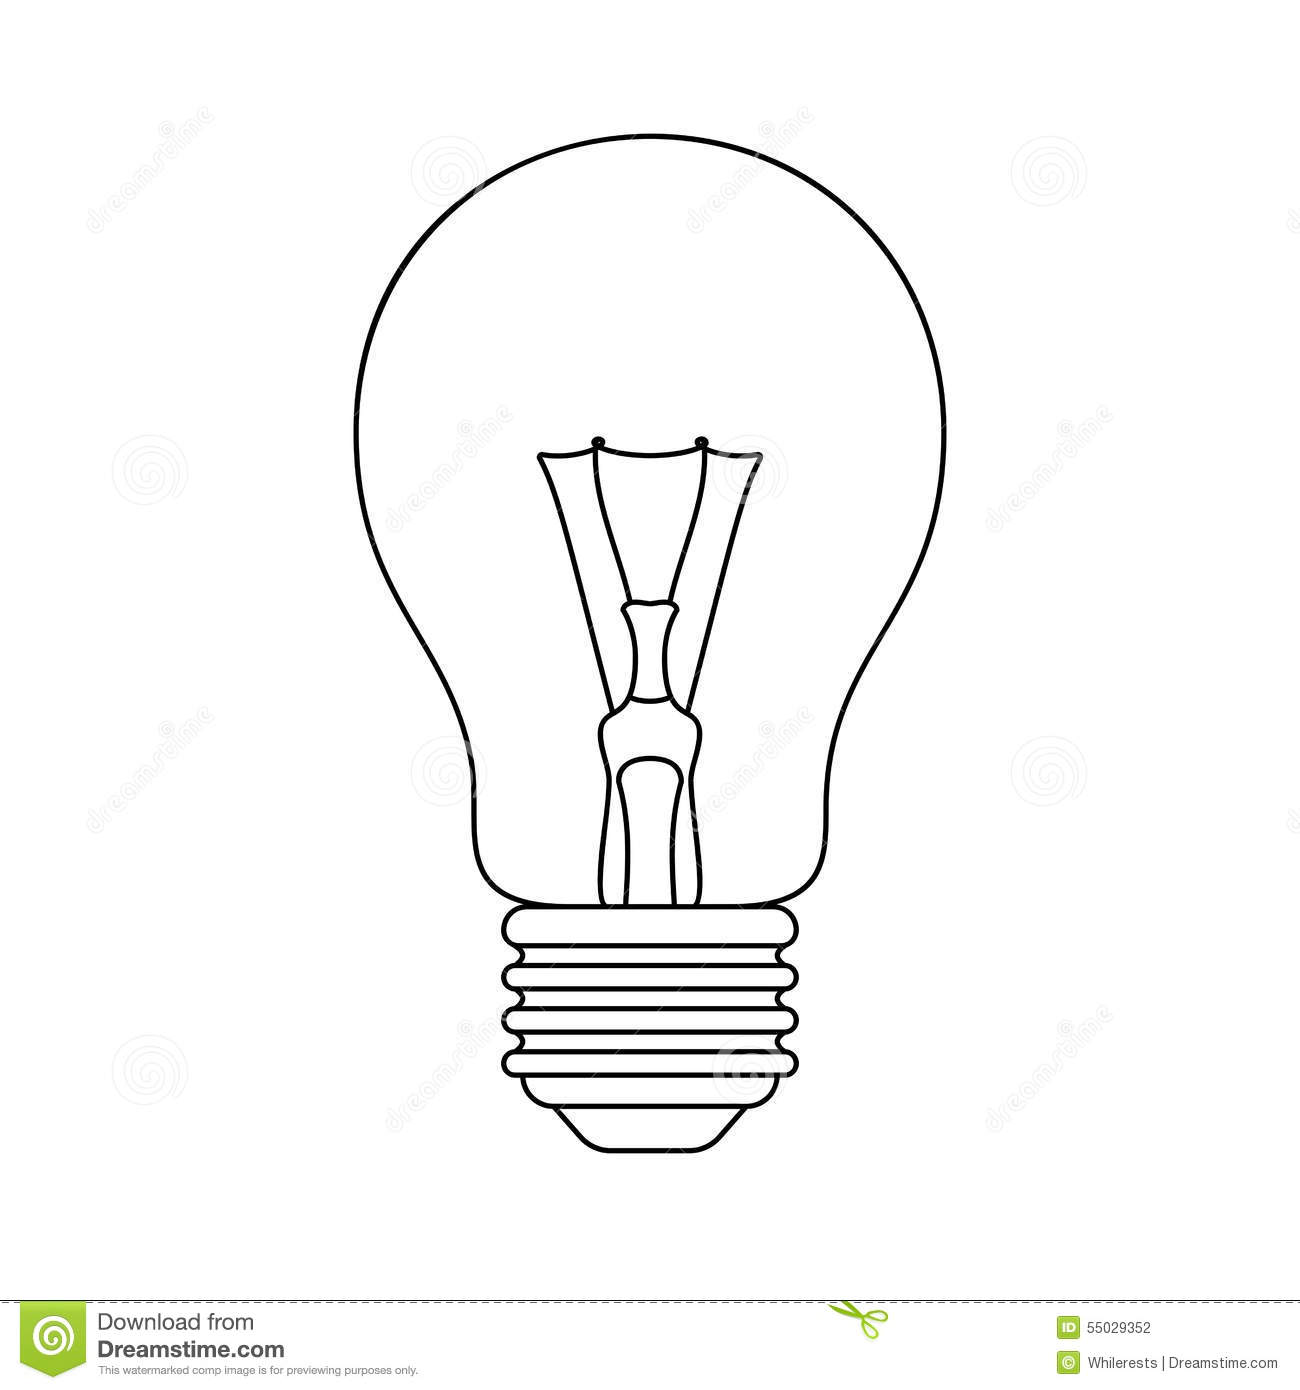 Electrical Systems And Methods Of Electrical Wiring additionally Best 10 Recessed Lighting Spacing Idea 2015 likewise Casanova Chandelier Ideal Lux additionally Parts Of A Chandelier Diagram also Cd4013 Pest Repellent Ultrasonic. on fluorescent lamp design